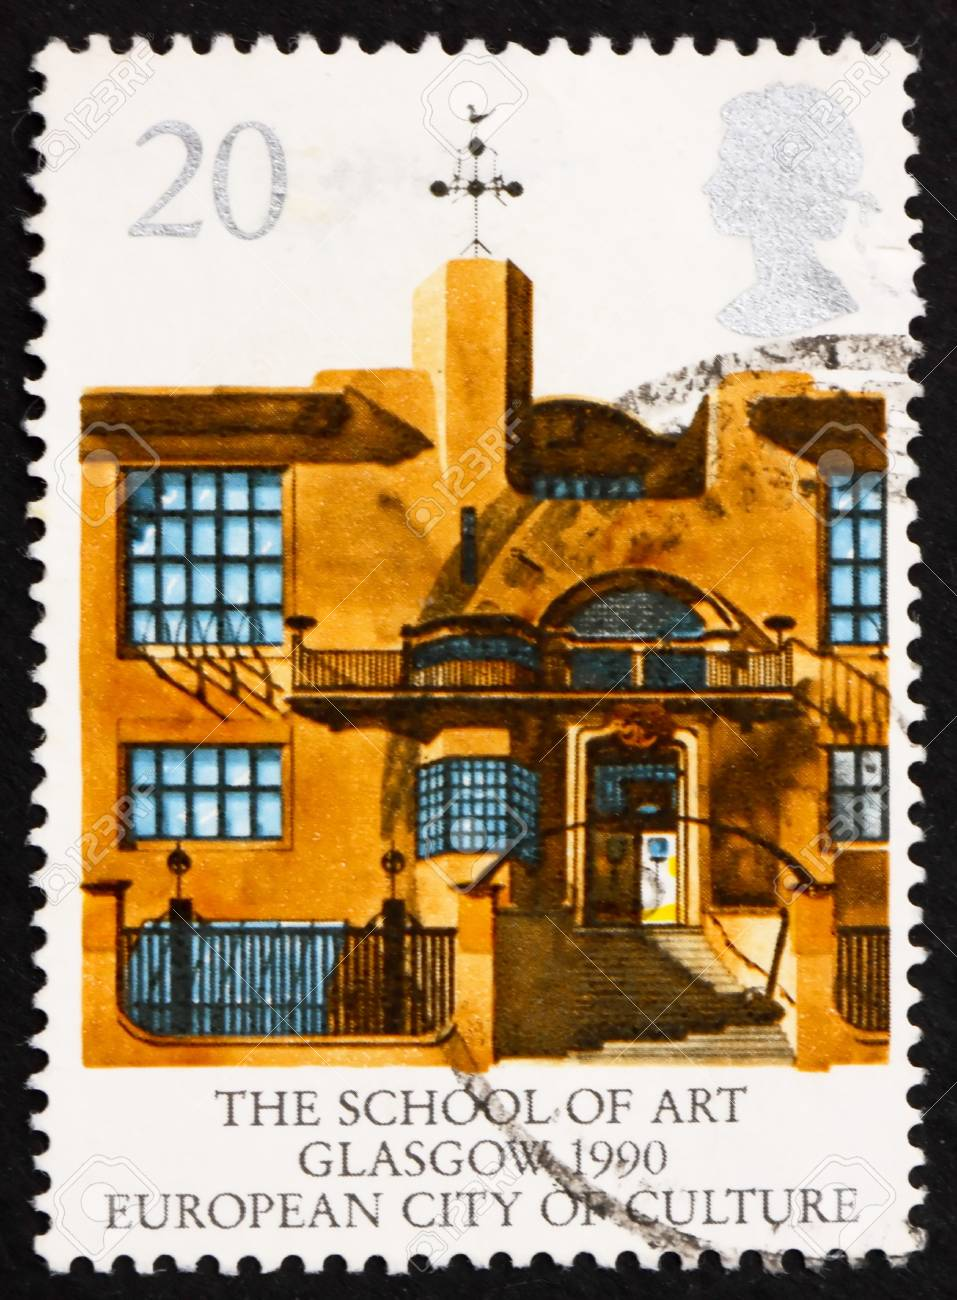 GREAT BRITAIN - CIRCA 1990: a stamp printed in the Great Britain shows School of Art, Glasgow, European City of Culture, circa 1990 Stock Photo - 14681552